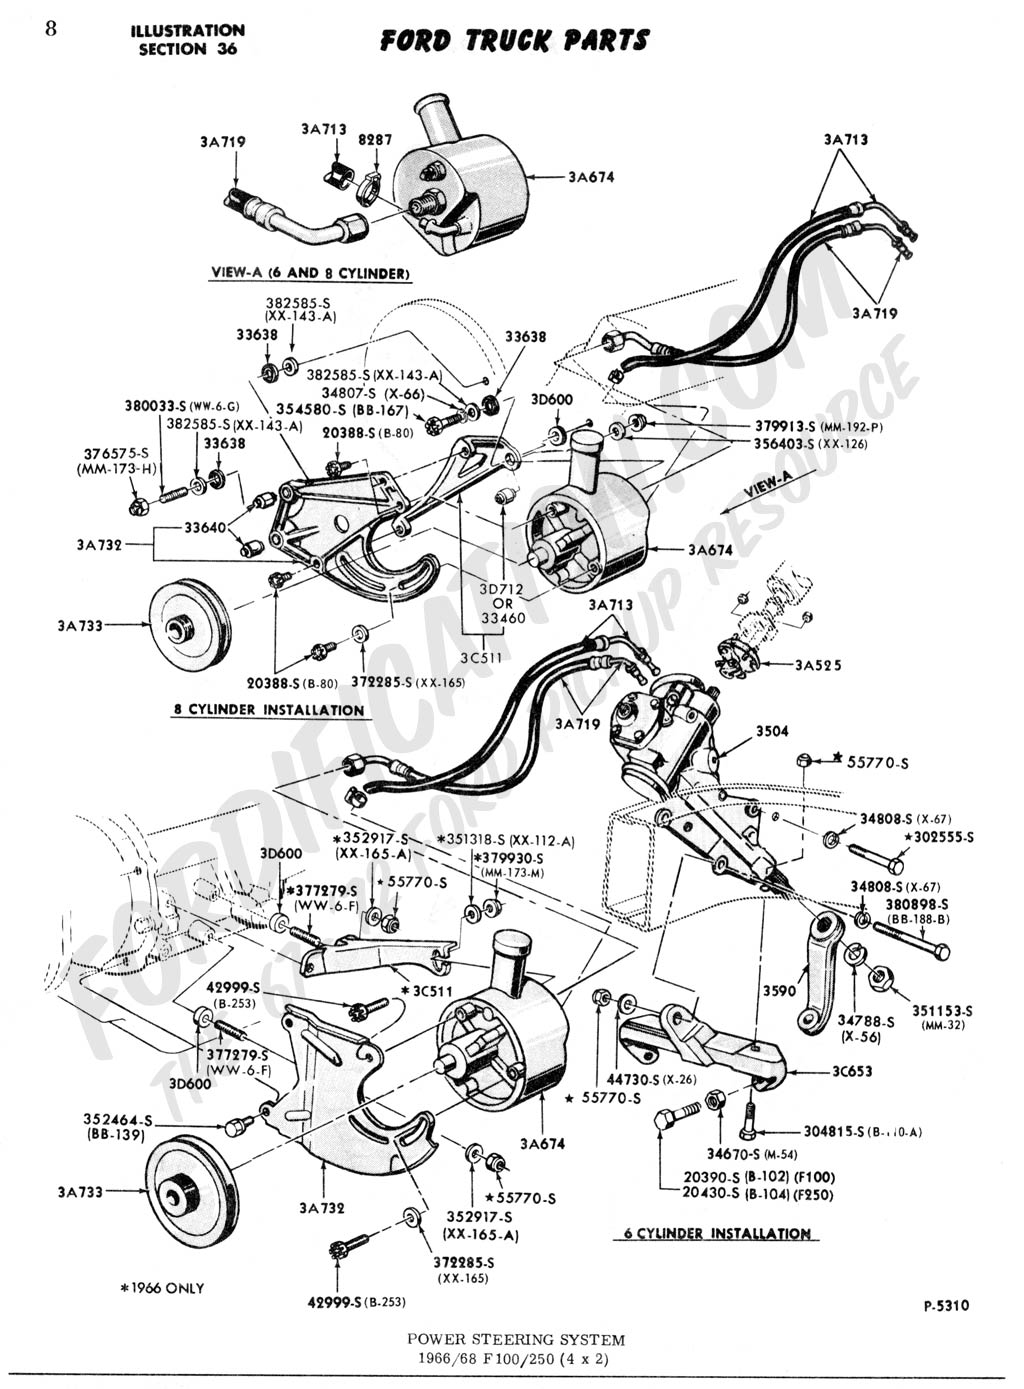 here is the power steering http://www.fordification.com/tech/image ...  eering.jpg